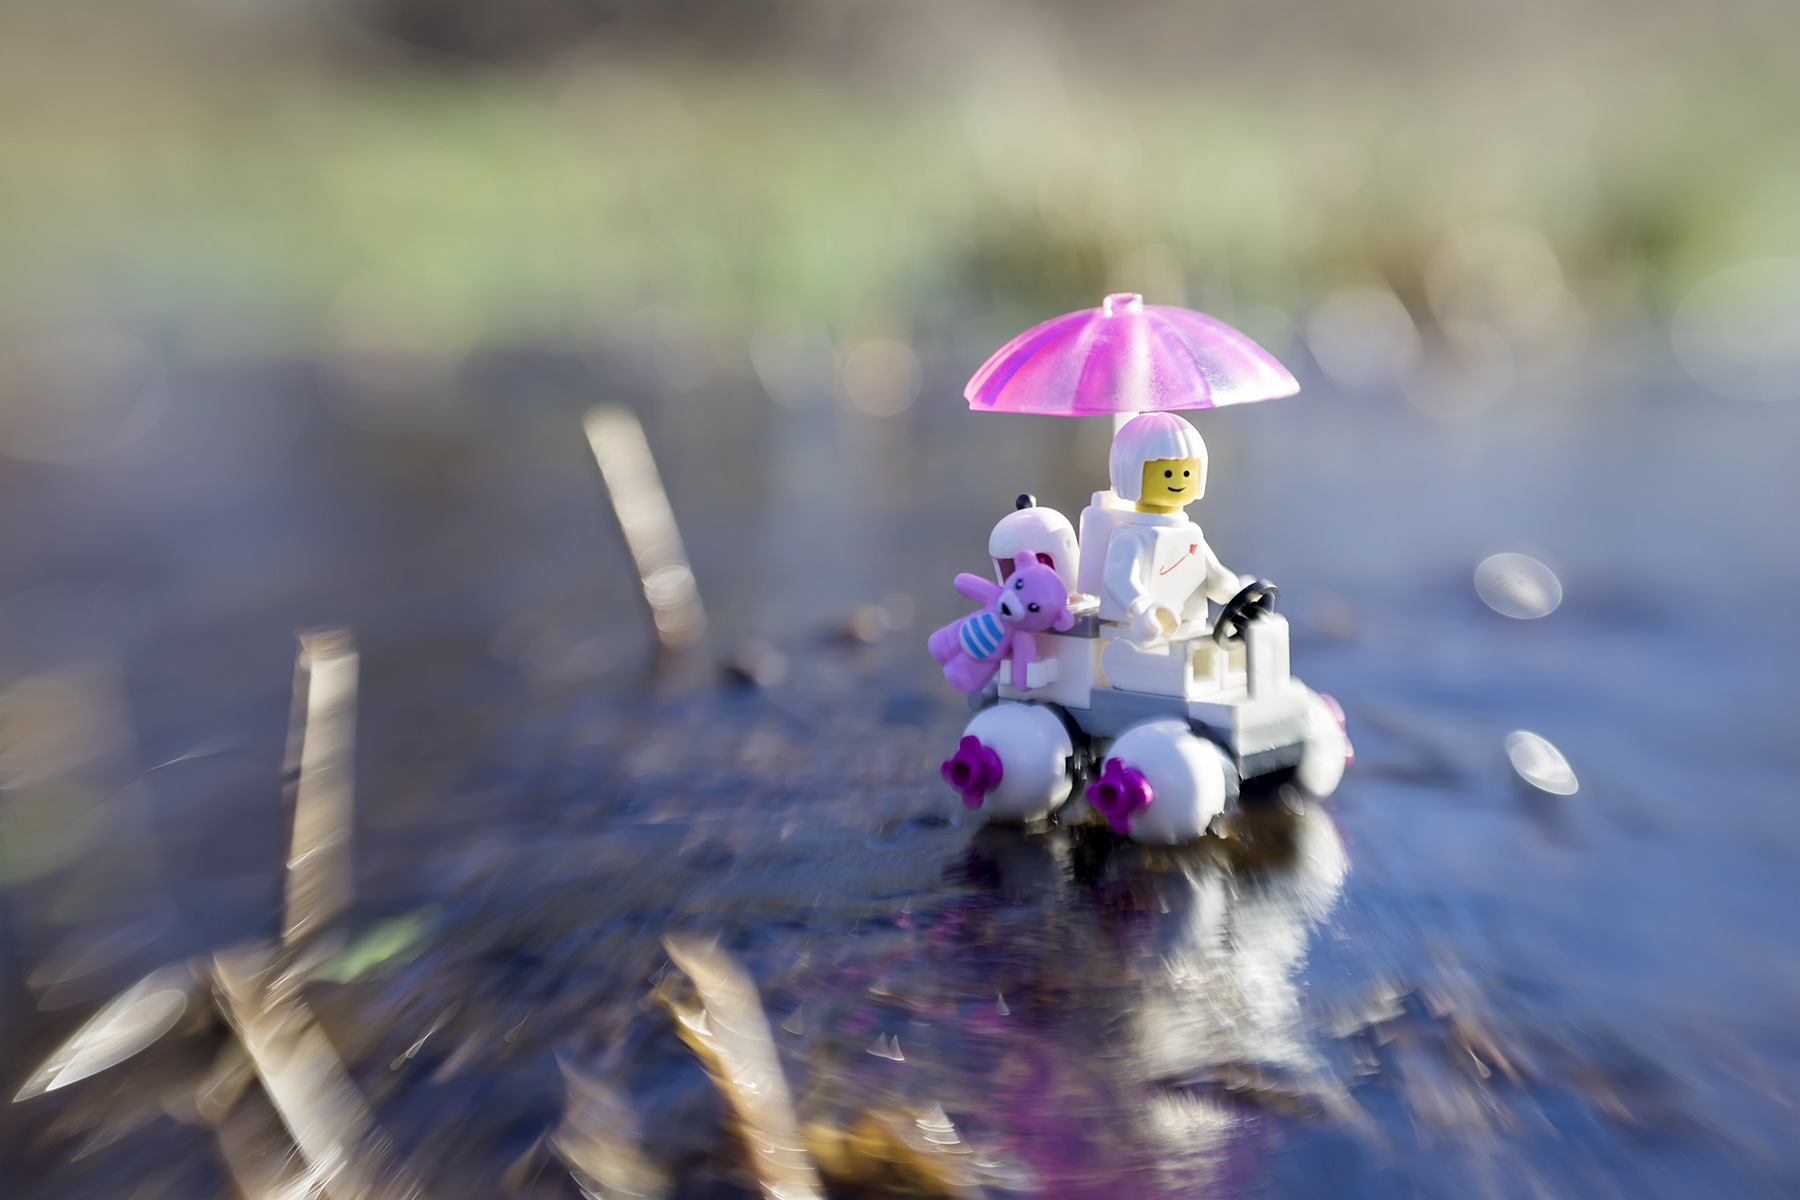 Lego space explorer with pink umbrella taken with a Lensbaby by Shelly Corbett